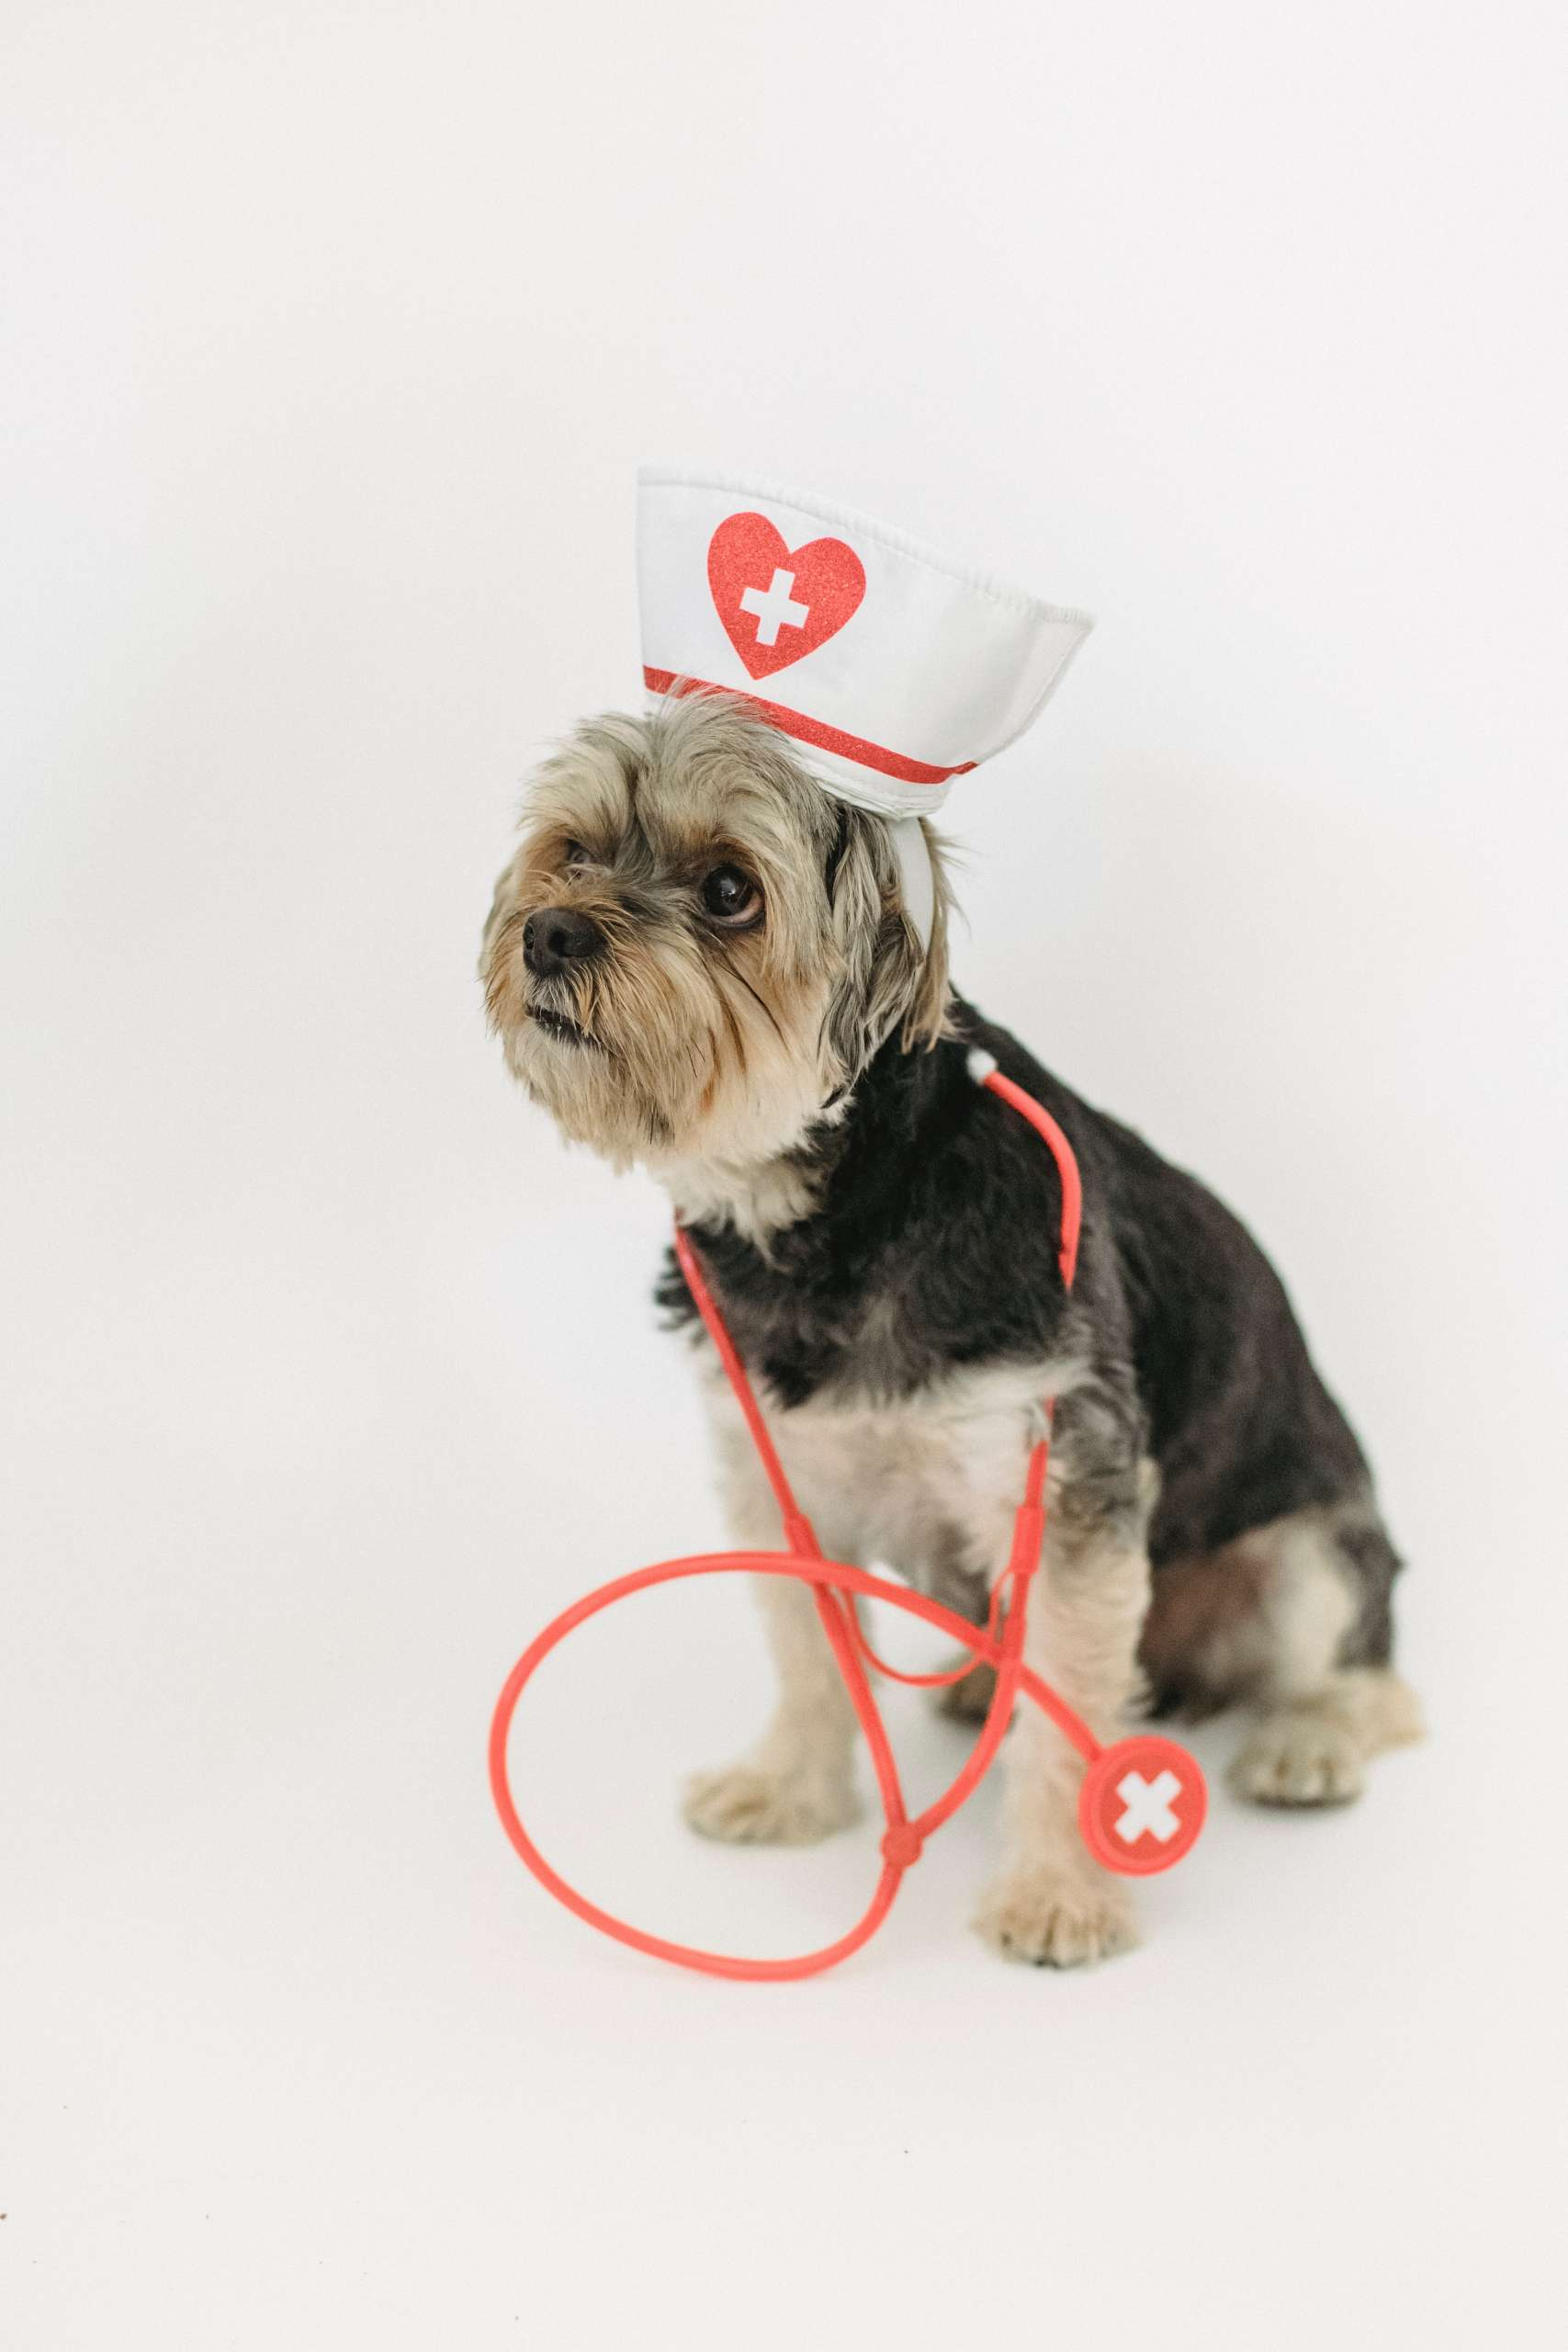 What to Expect After Neutering Your Dog